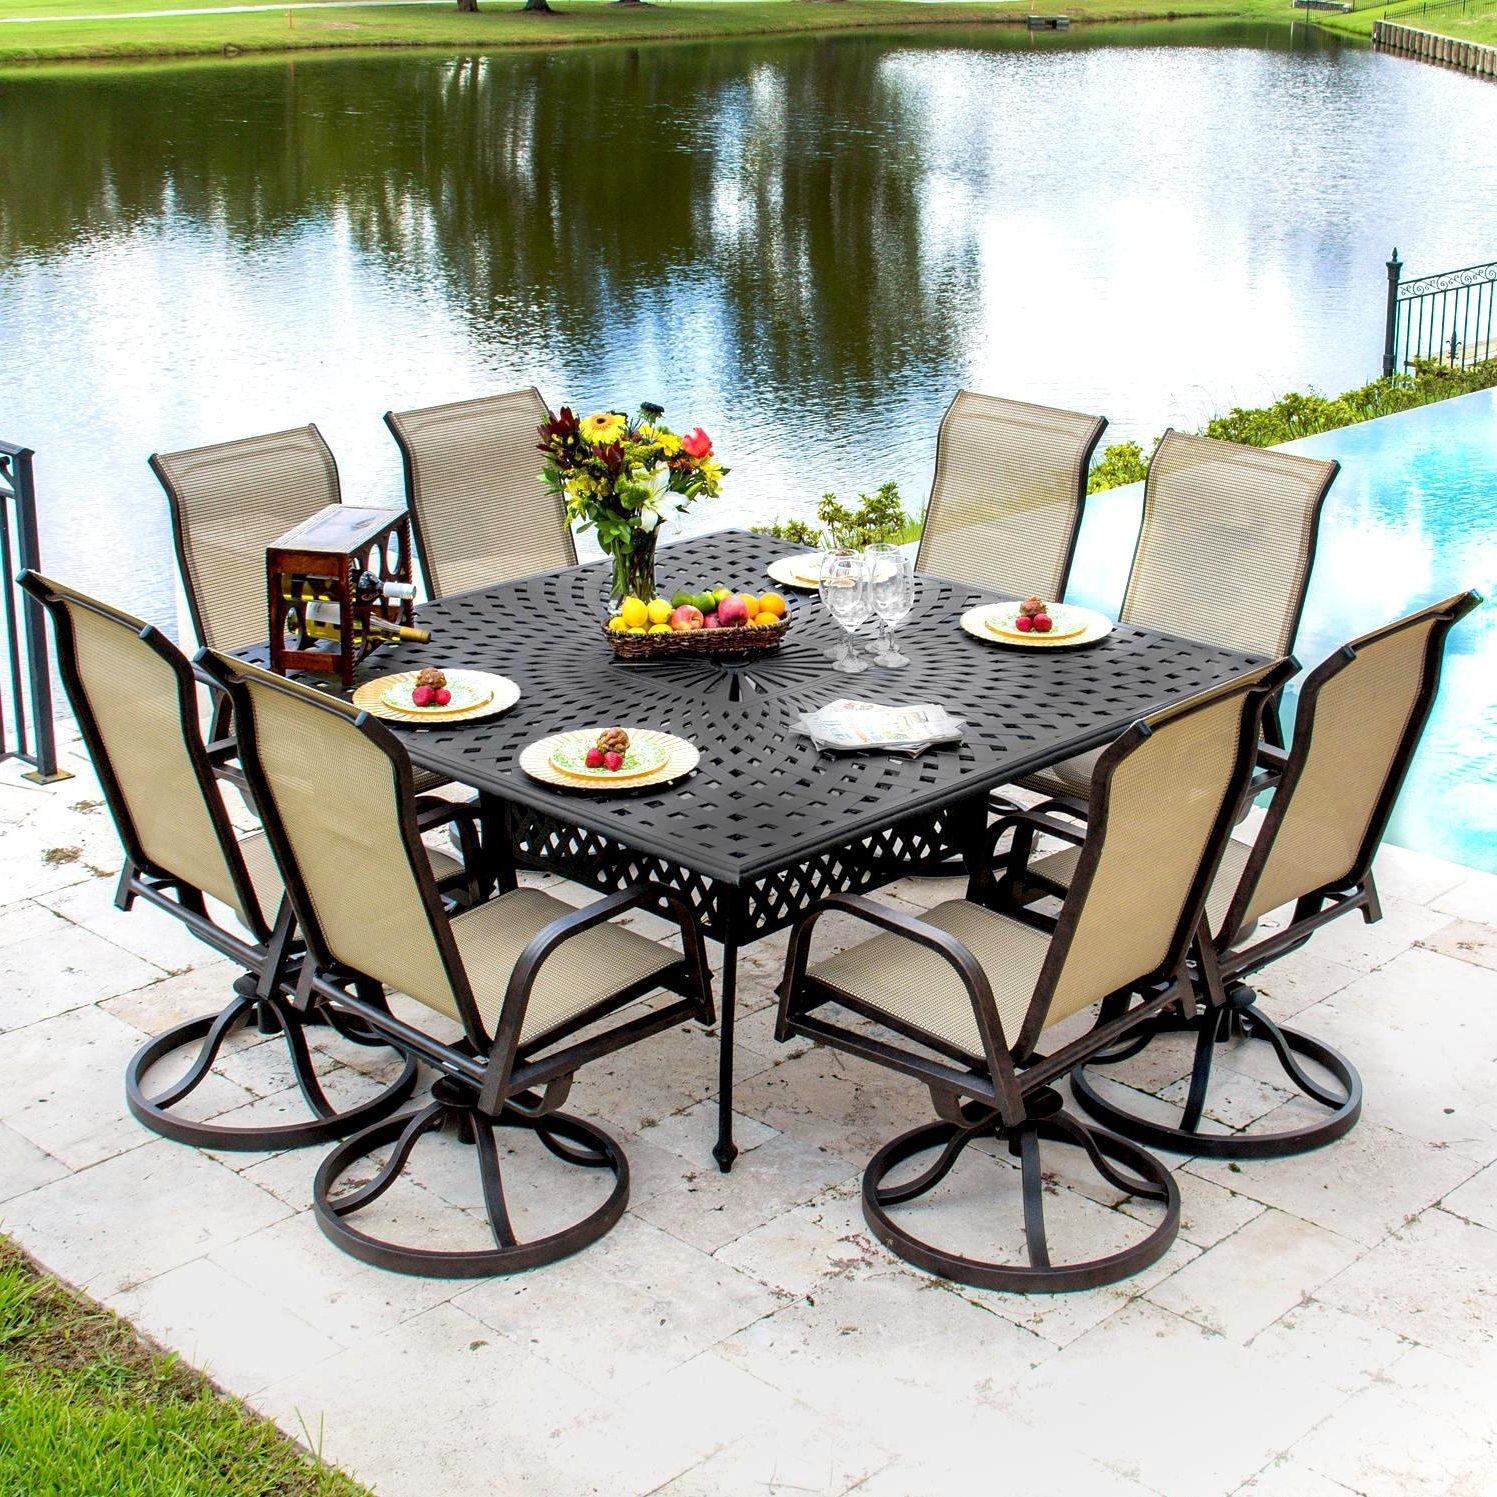 Incredible Sling Patio Furniture Sets Atio Dining Table Set Unique In Best And Newest Patio Conversation Sets With Rockers (View 7 of 20)